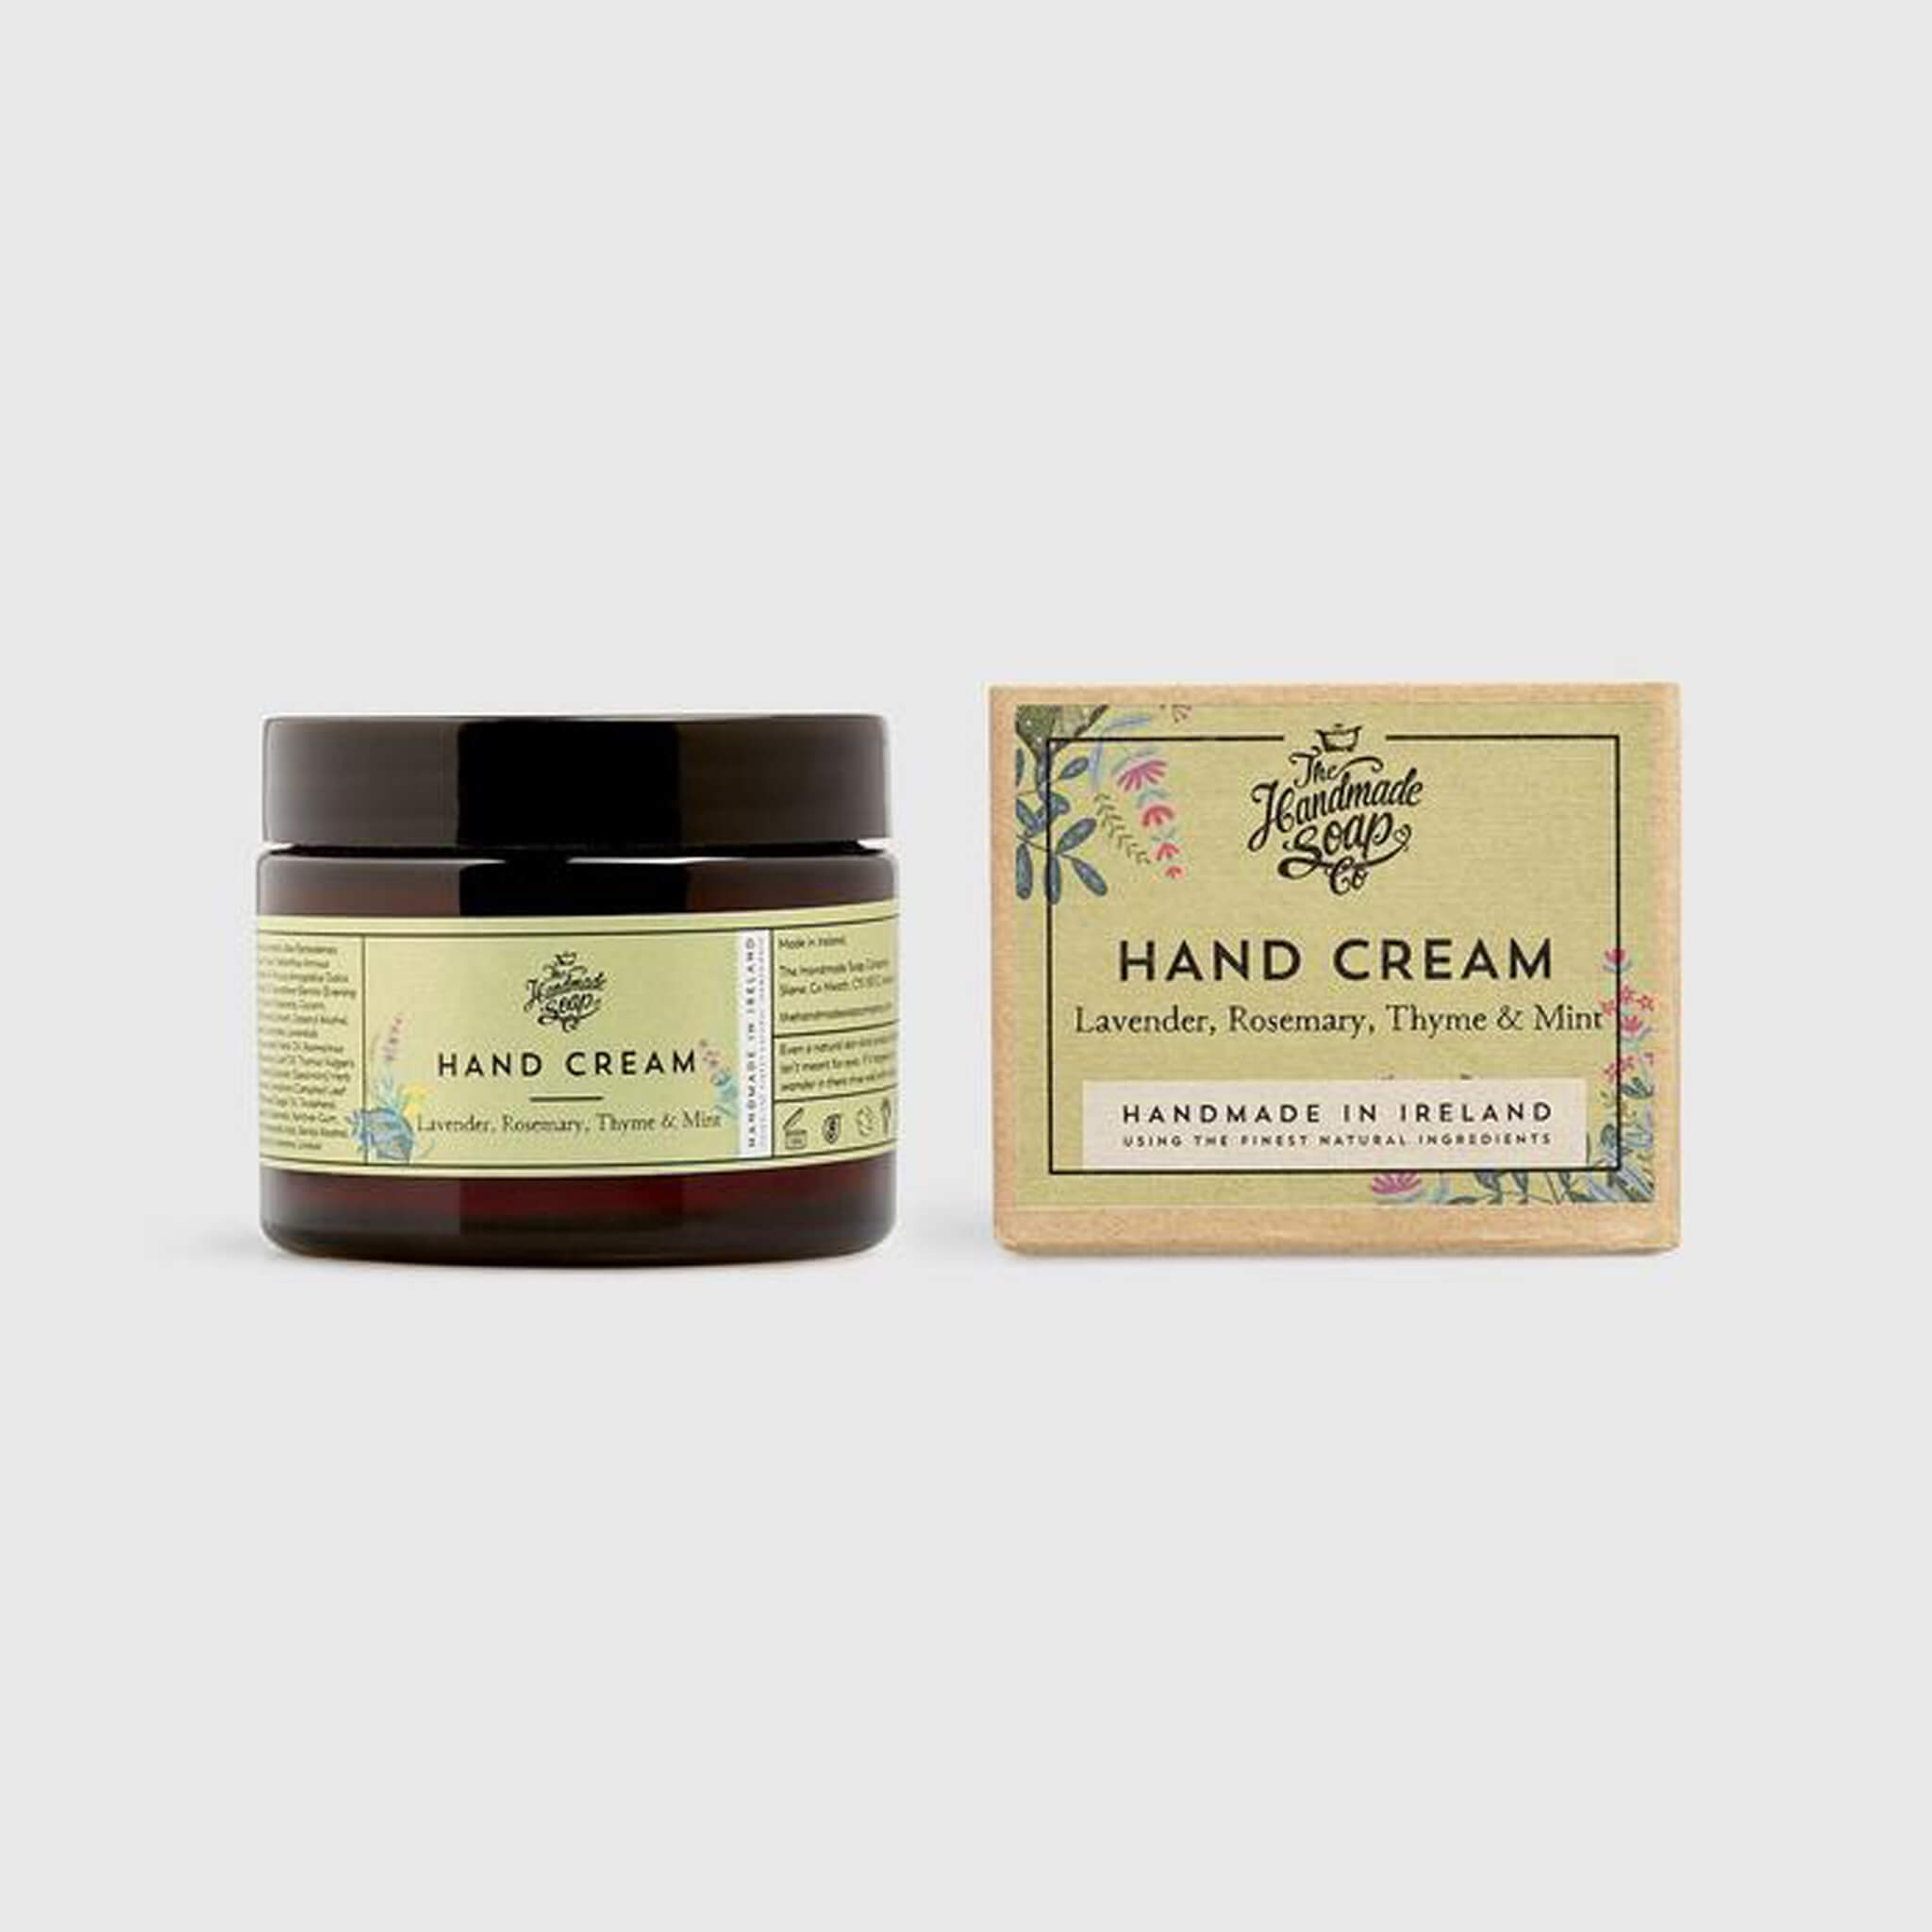 Lavender Rosemary Thyme & Mint Hand Cream - Unik by Nature